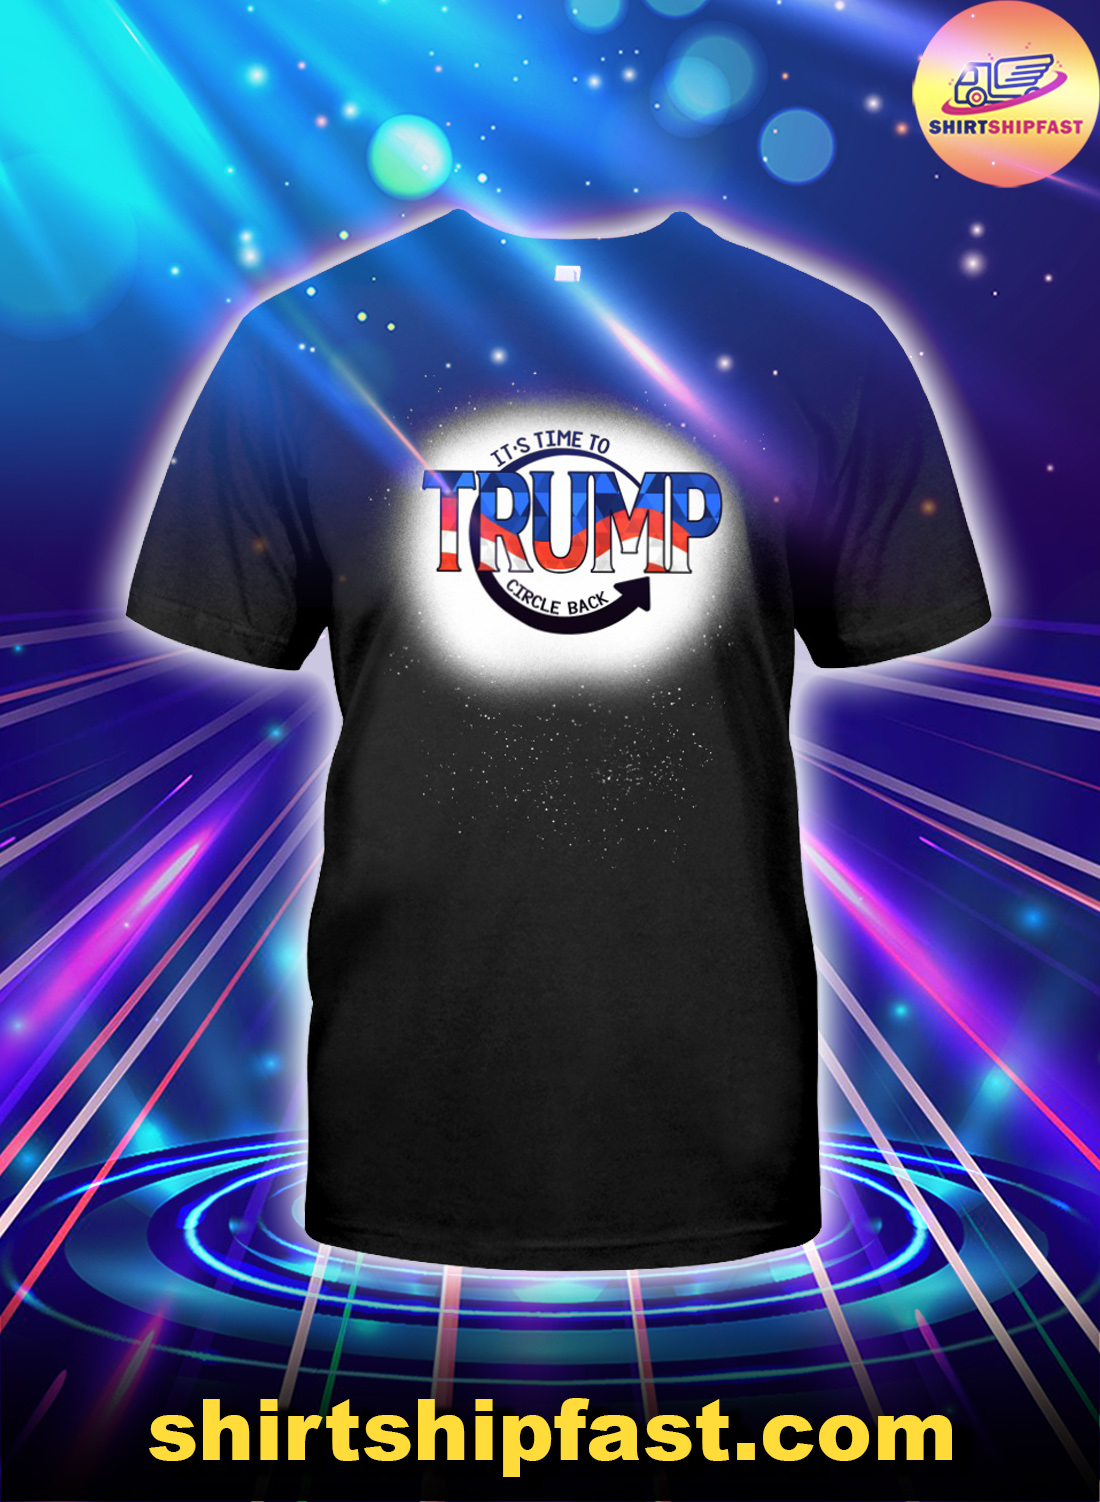 It's time to Trump circle back shirt